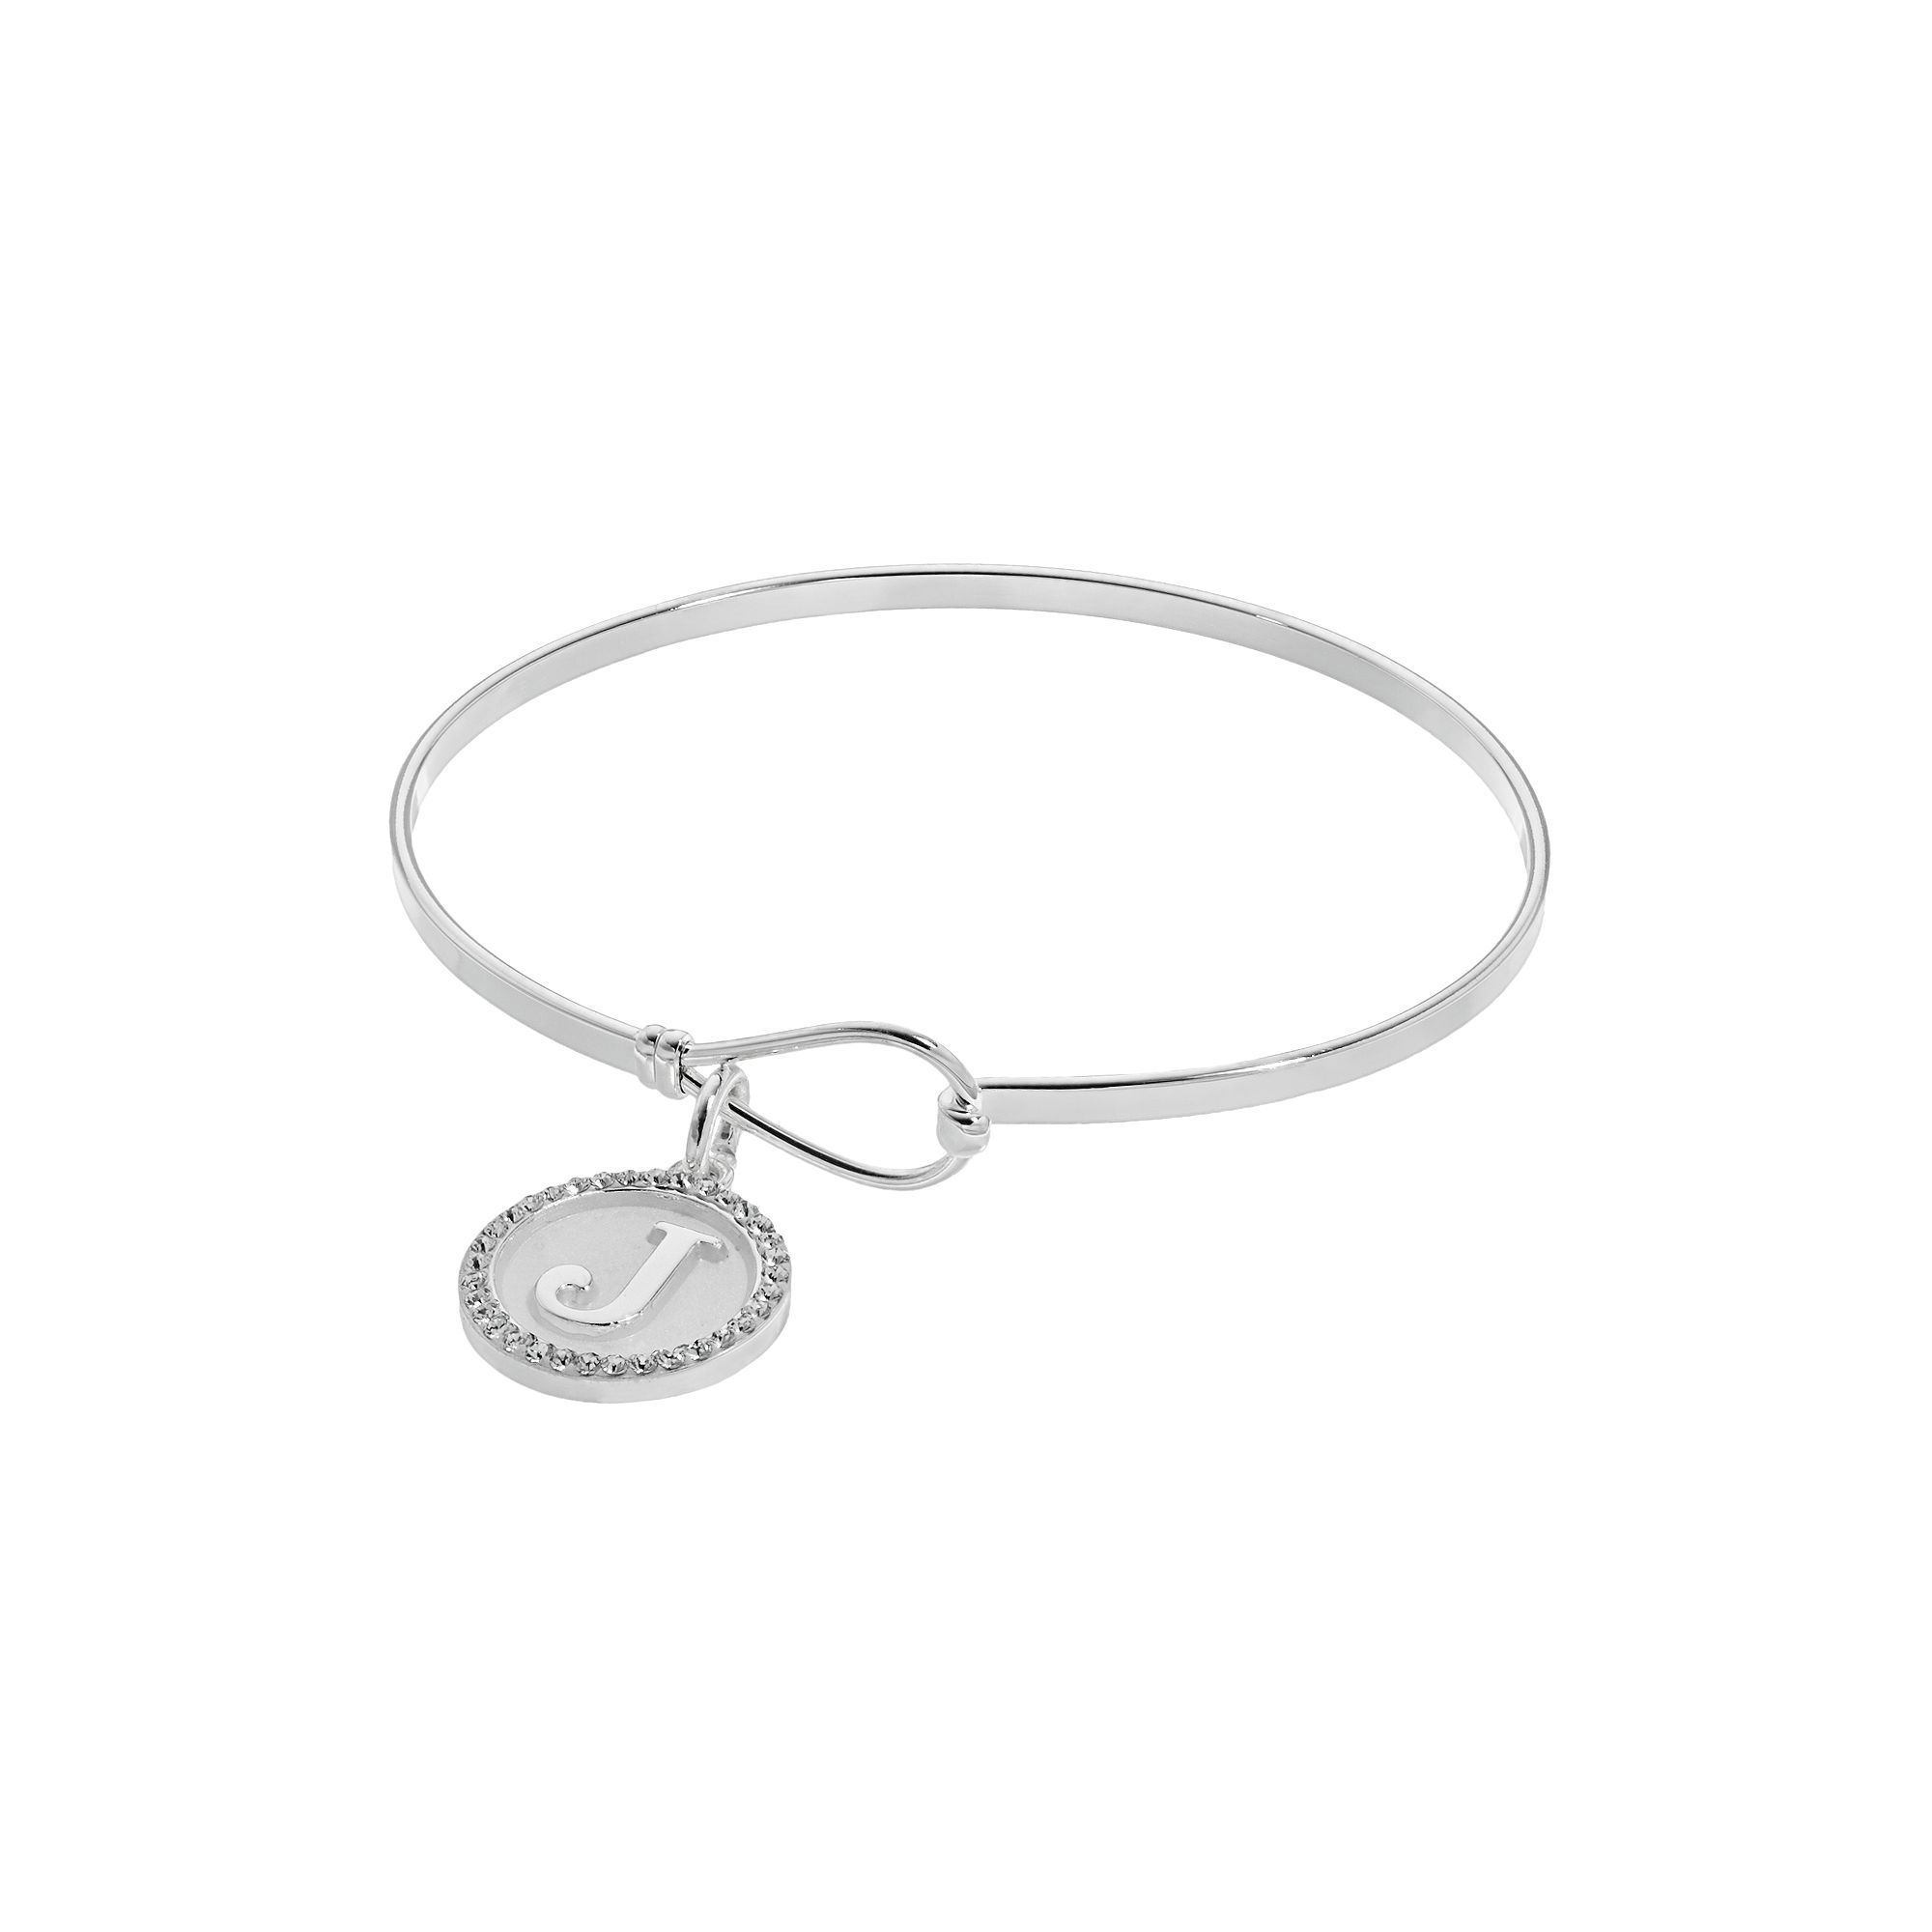 organic classic le papier grandchild bangle bracelet charm studio set bangles silhouette products